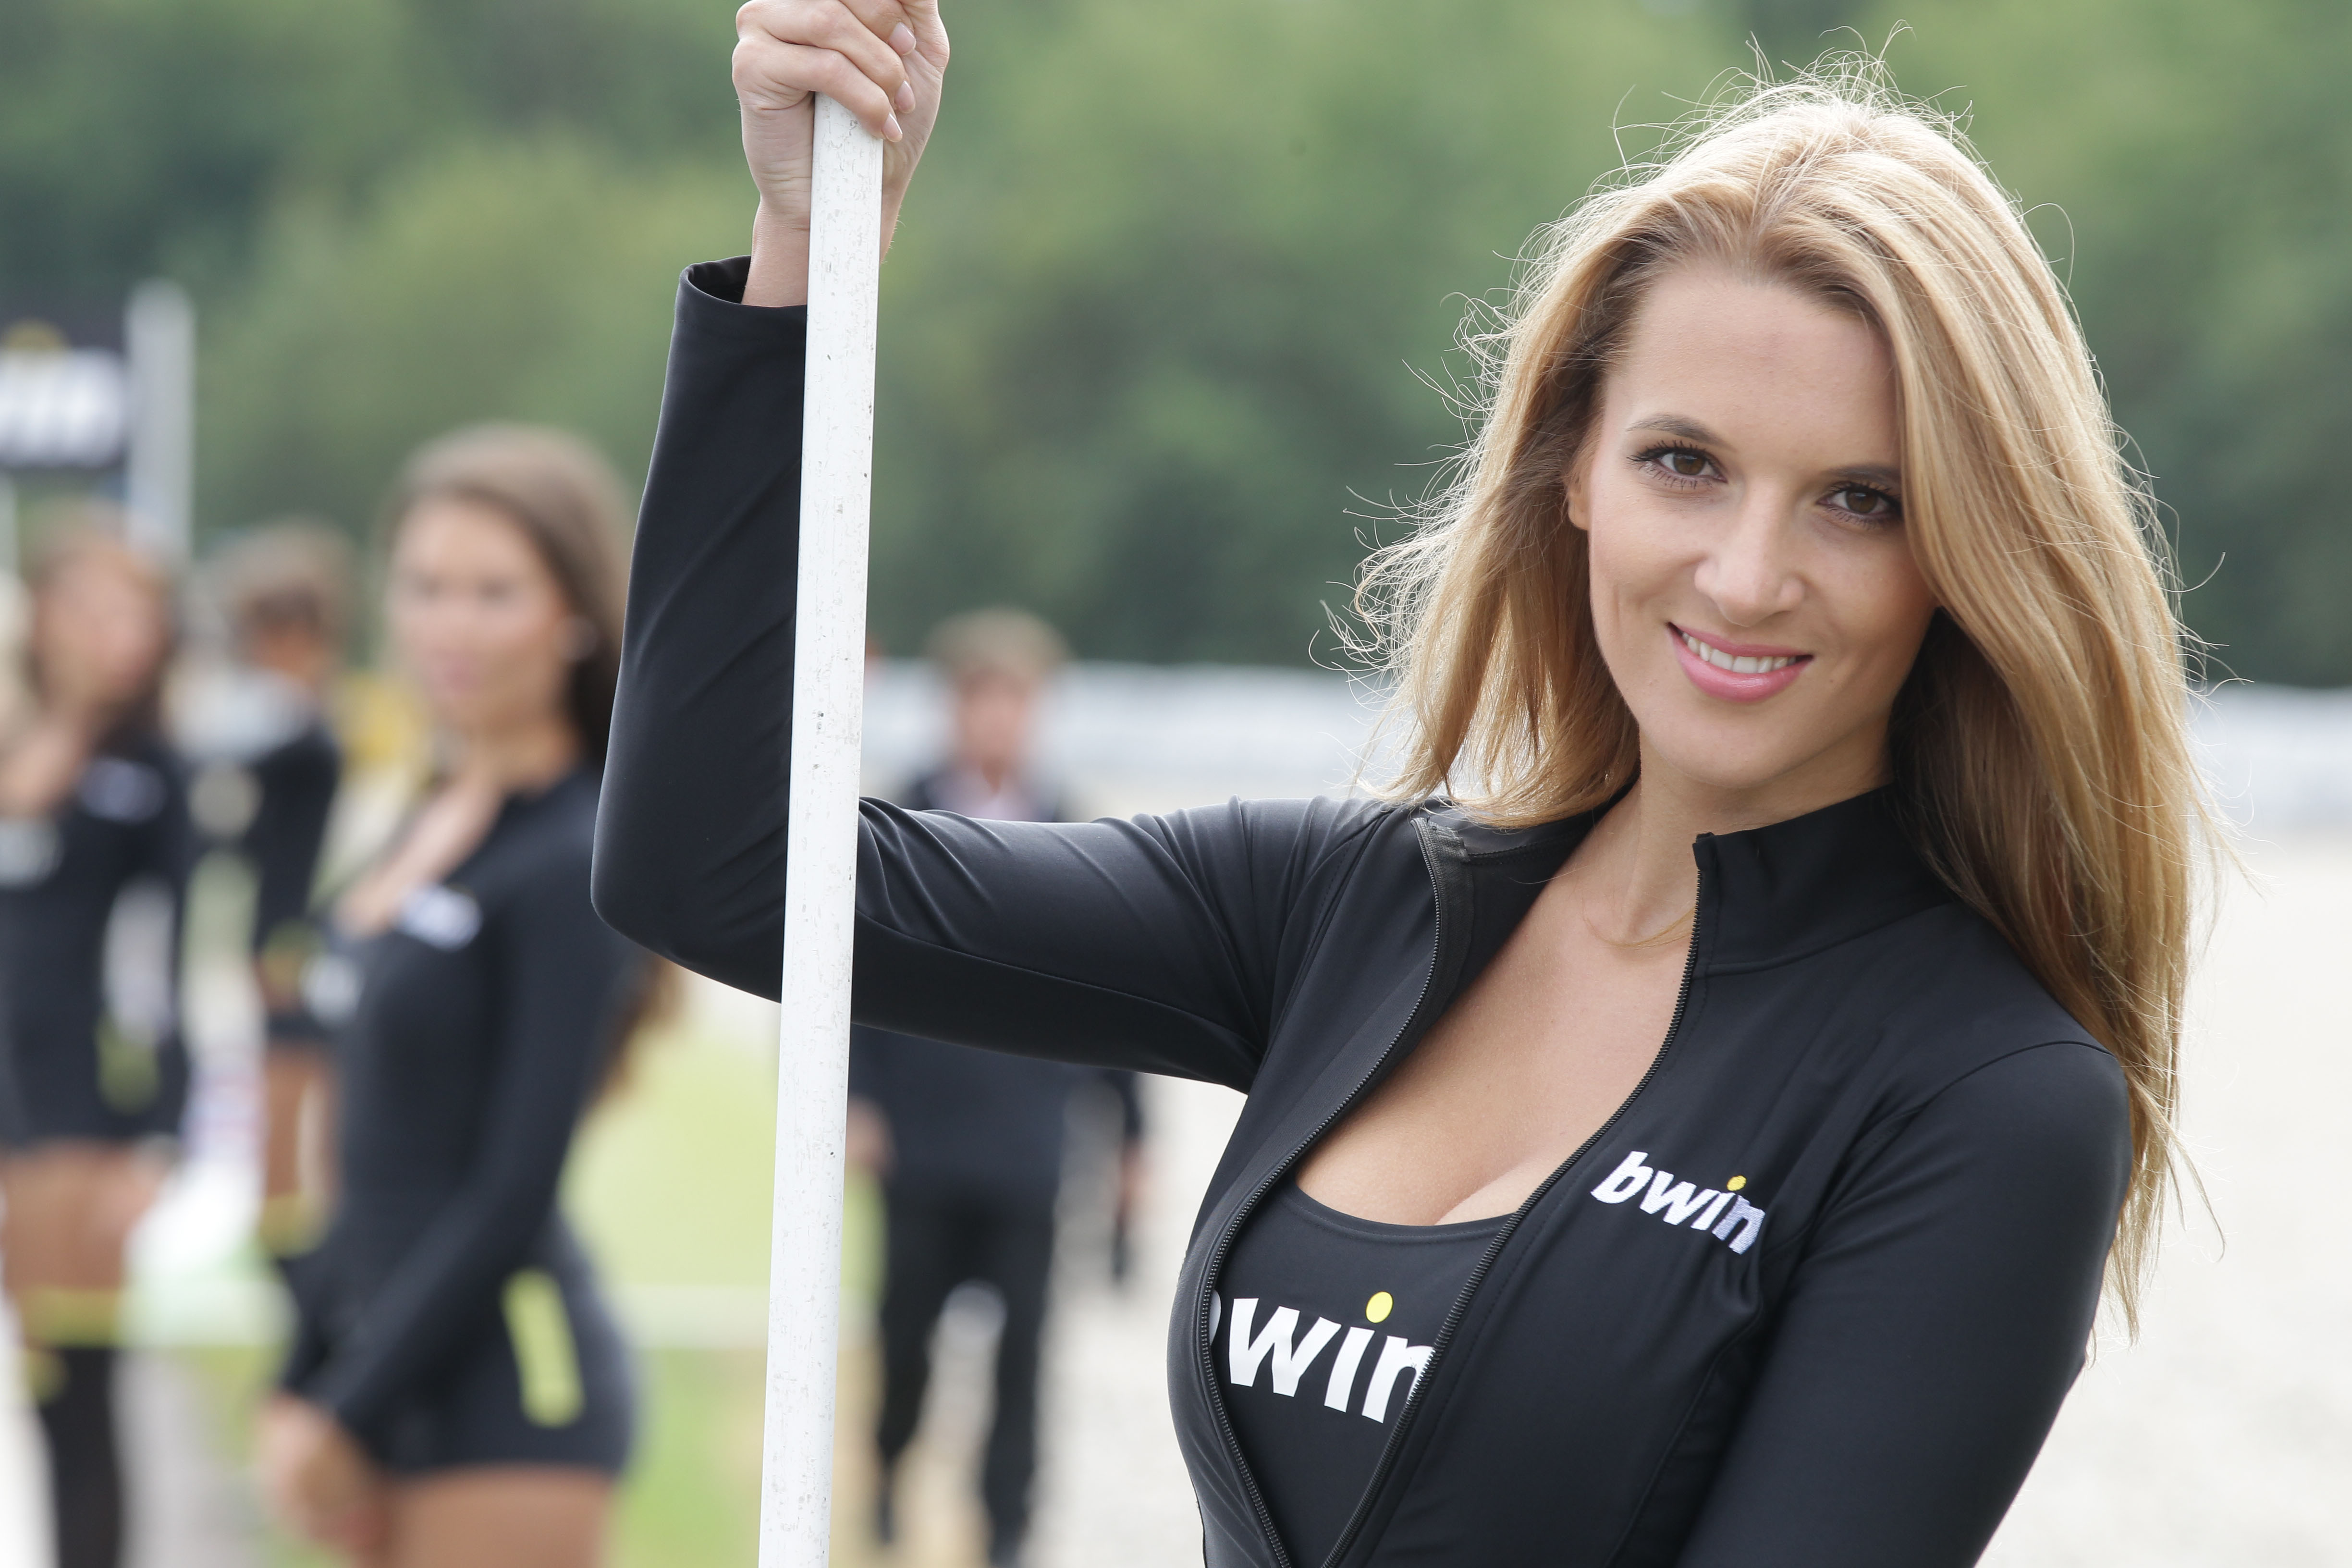 Motogp Brno Czech Grid Girl Gallery Visordown